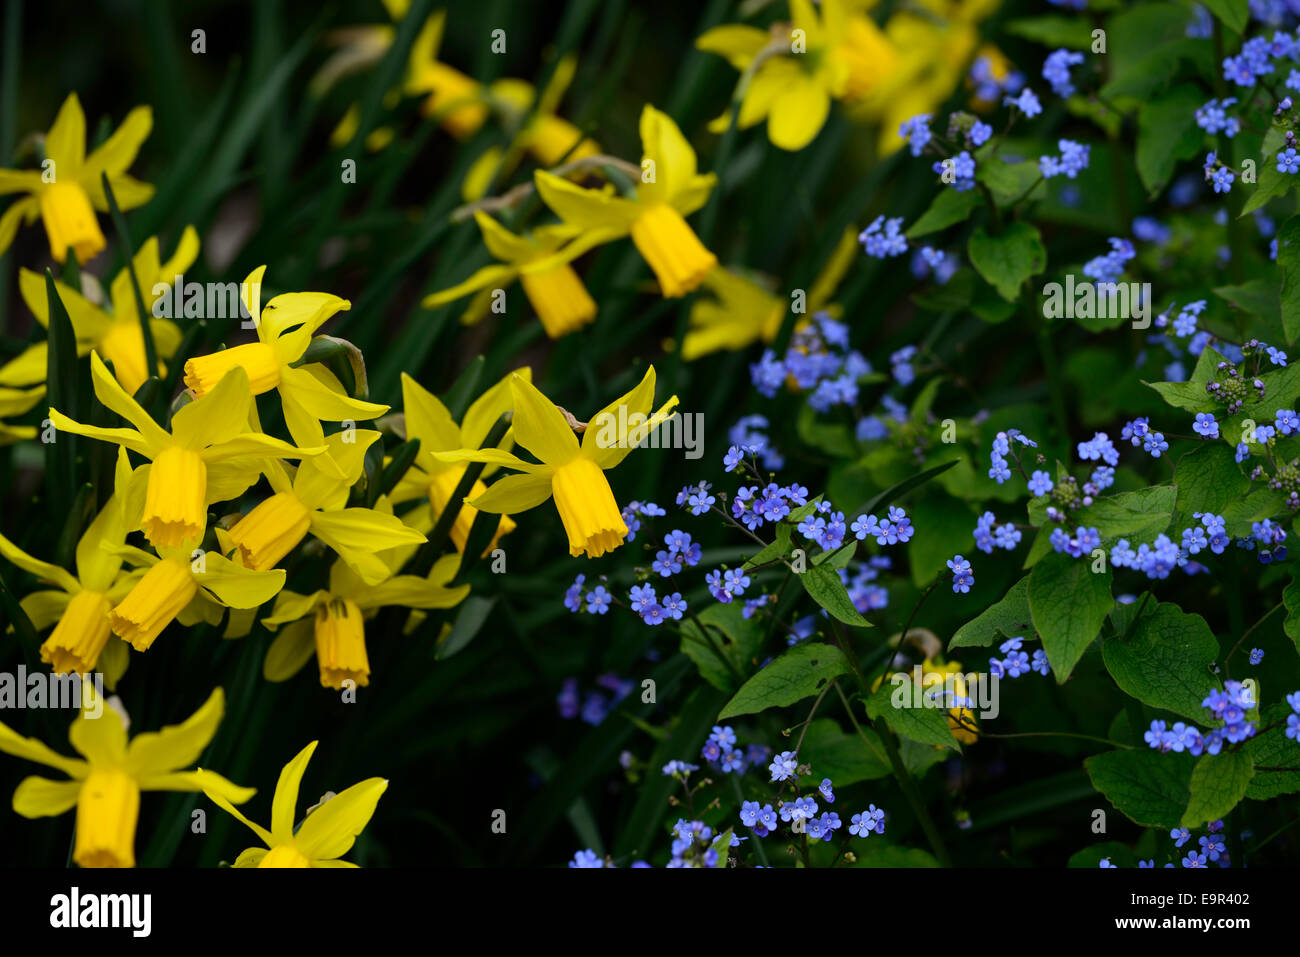 Omphalodes verna narcissus february gold yellow blue spring stock photo omphalodes verna narcissus february gold yellow blue spring flowers flower plant combination planting partners rm floral dhlflorist Choice Image